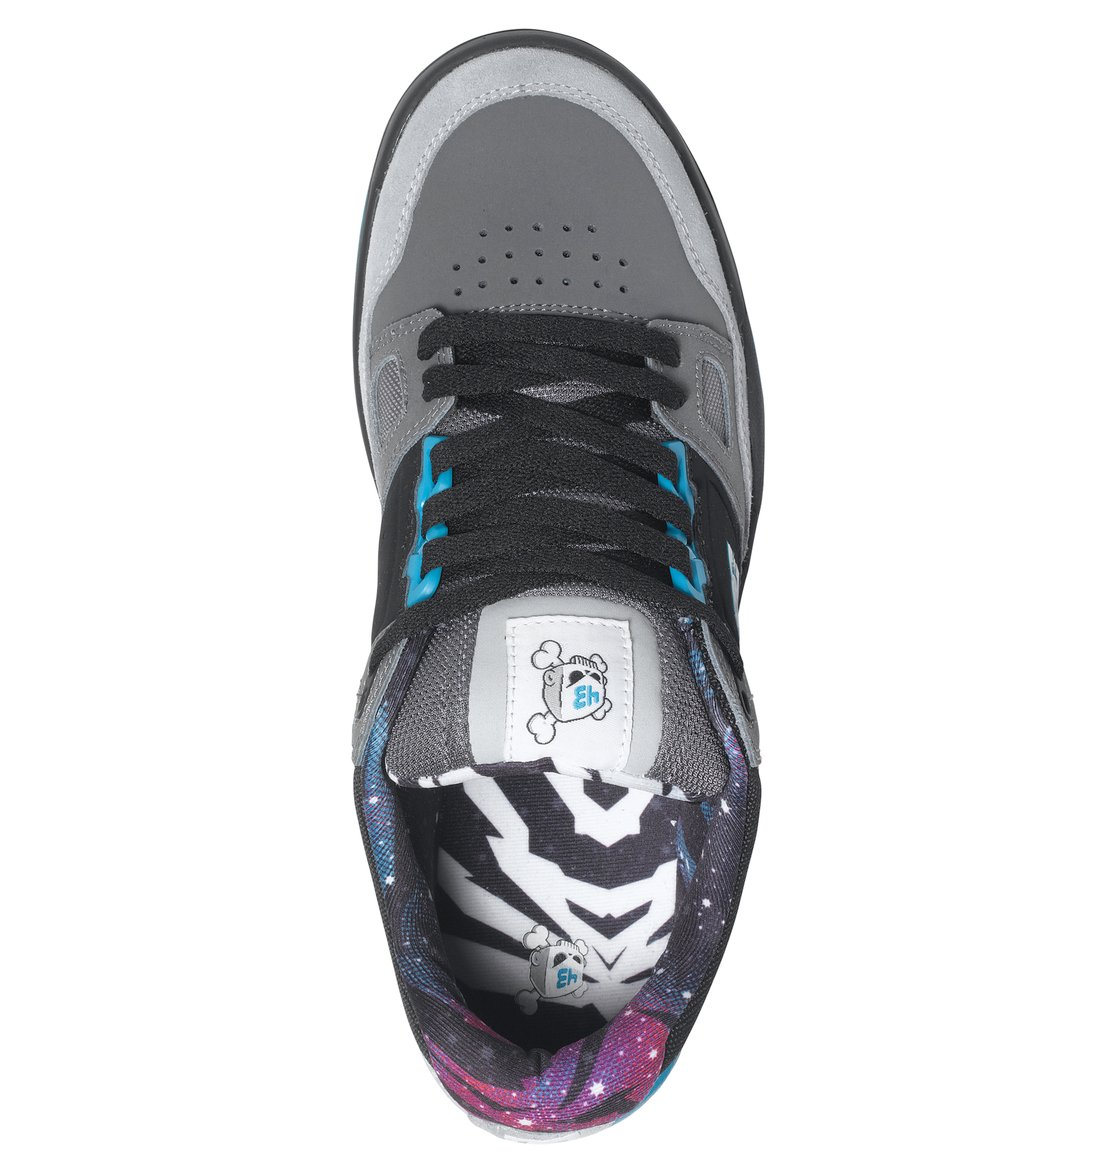 competitive price 06da2 21e3a Stag 2 KB - Low Top Schuhe ADYS100258 | DC Shoes